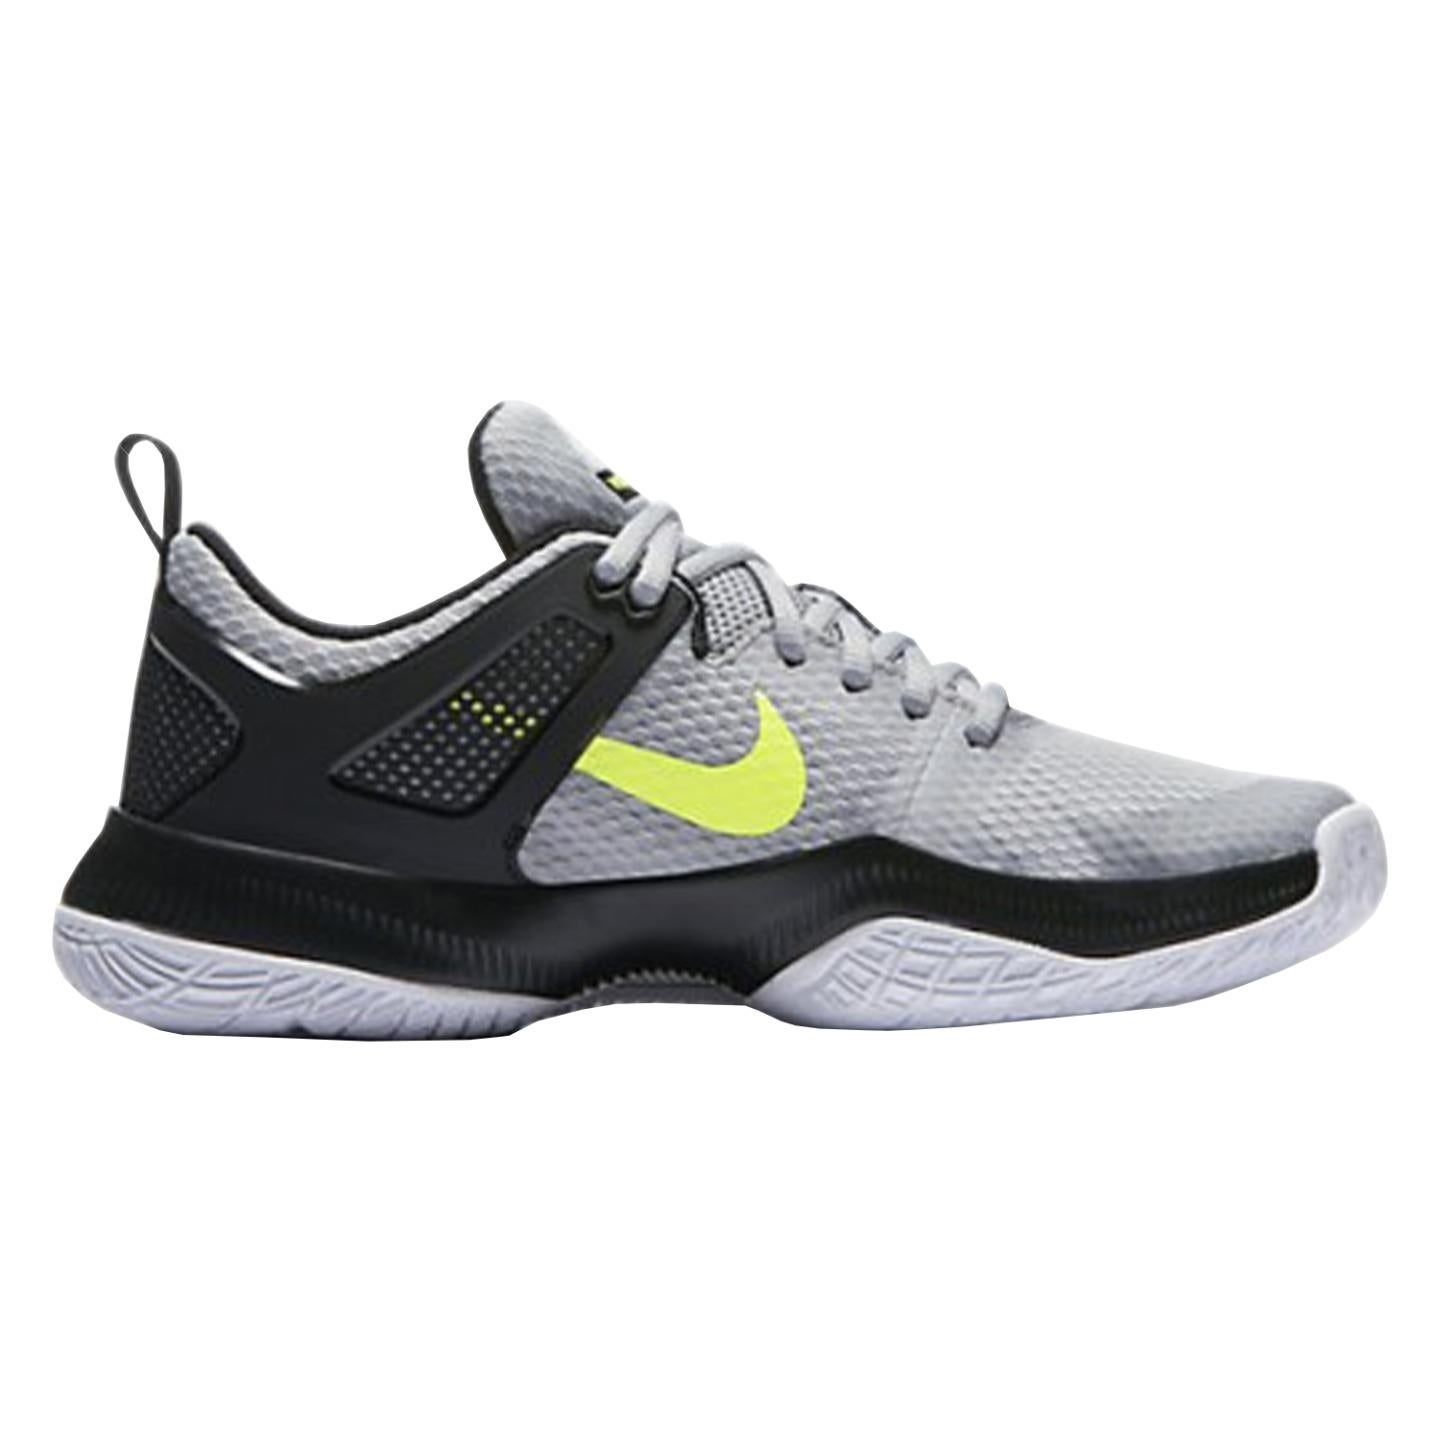 d5cbf41e2dbd8 Shop Nike 902367 Air Zoom Hyperace Womens Vollyball Shoes - Free Shipping  Today - Overstock - 24202809